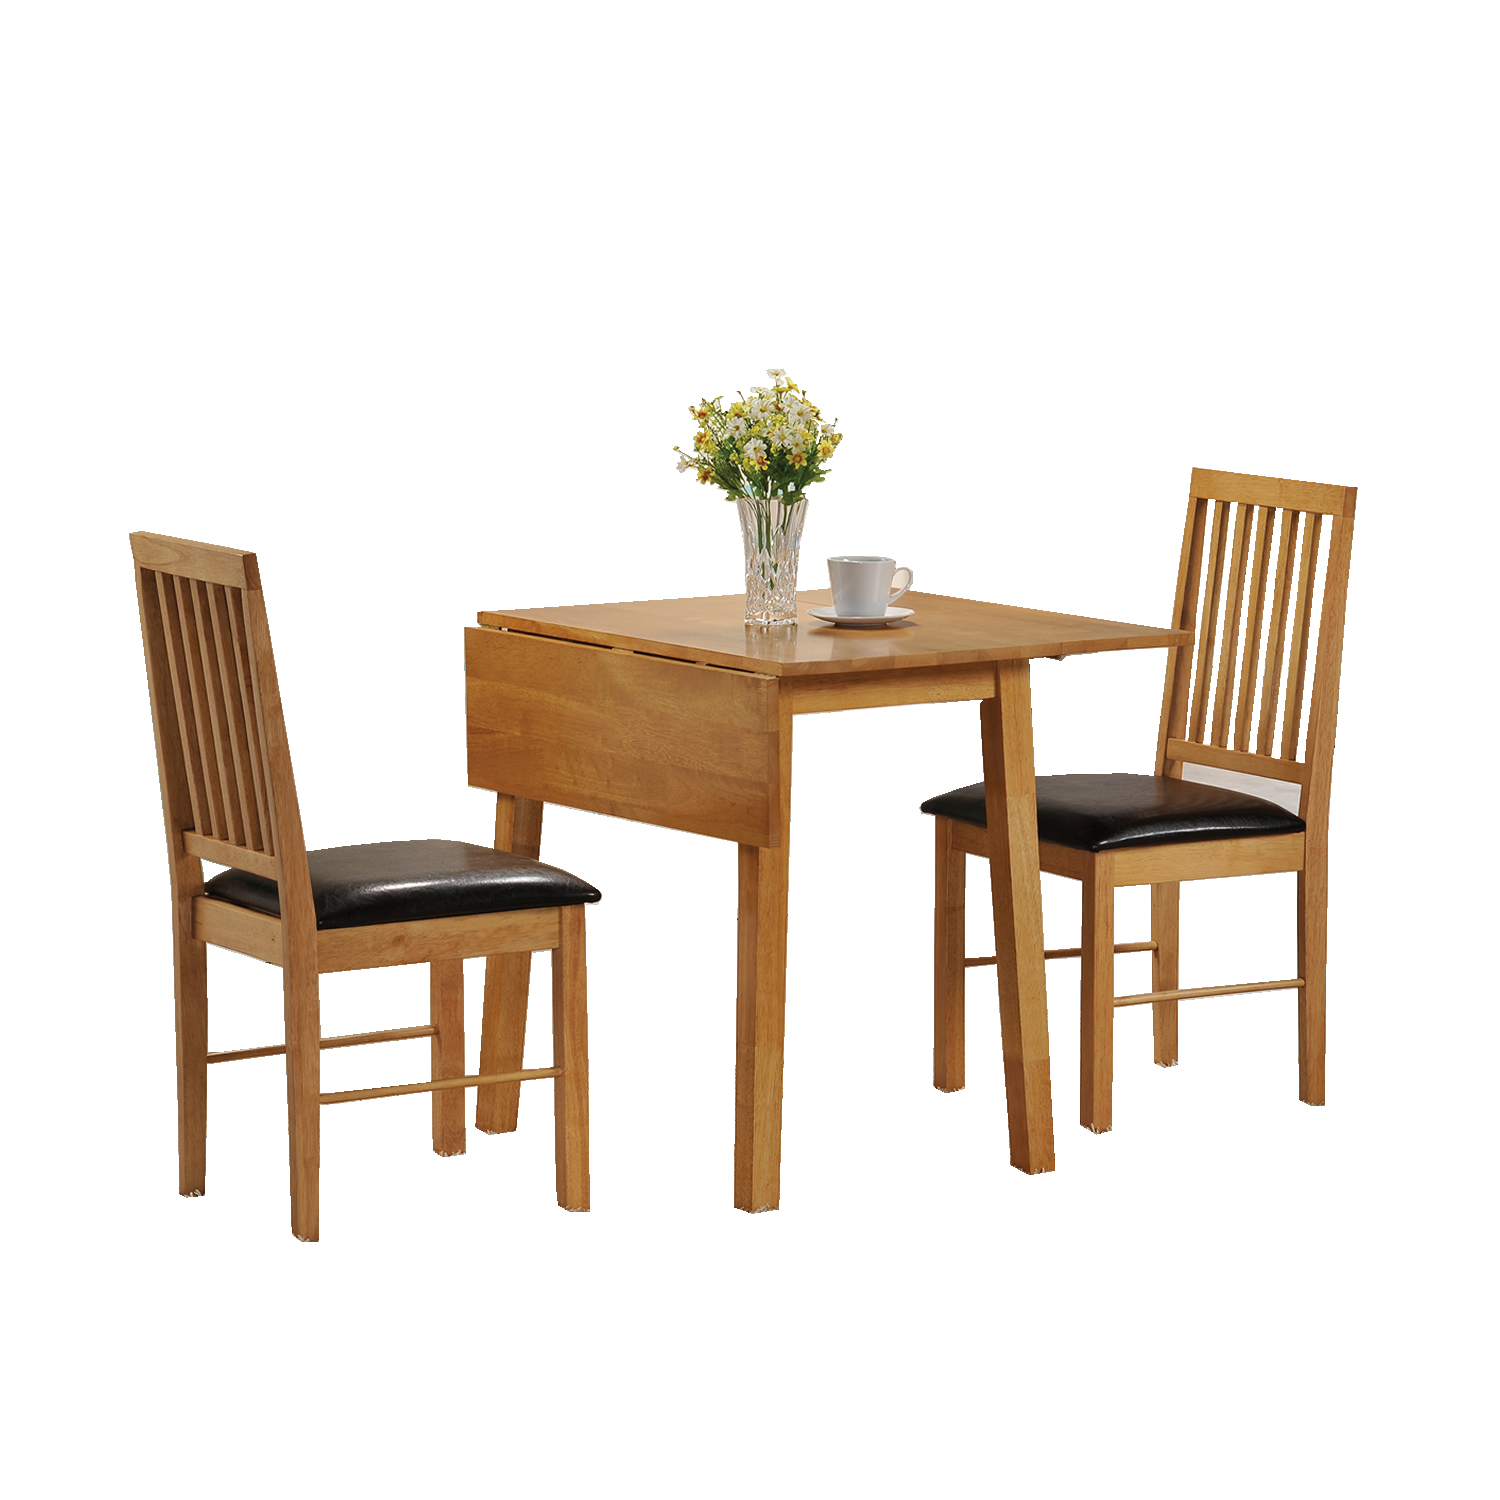 Drop leaf tables for small spaces homesfeed for Small room table